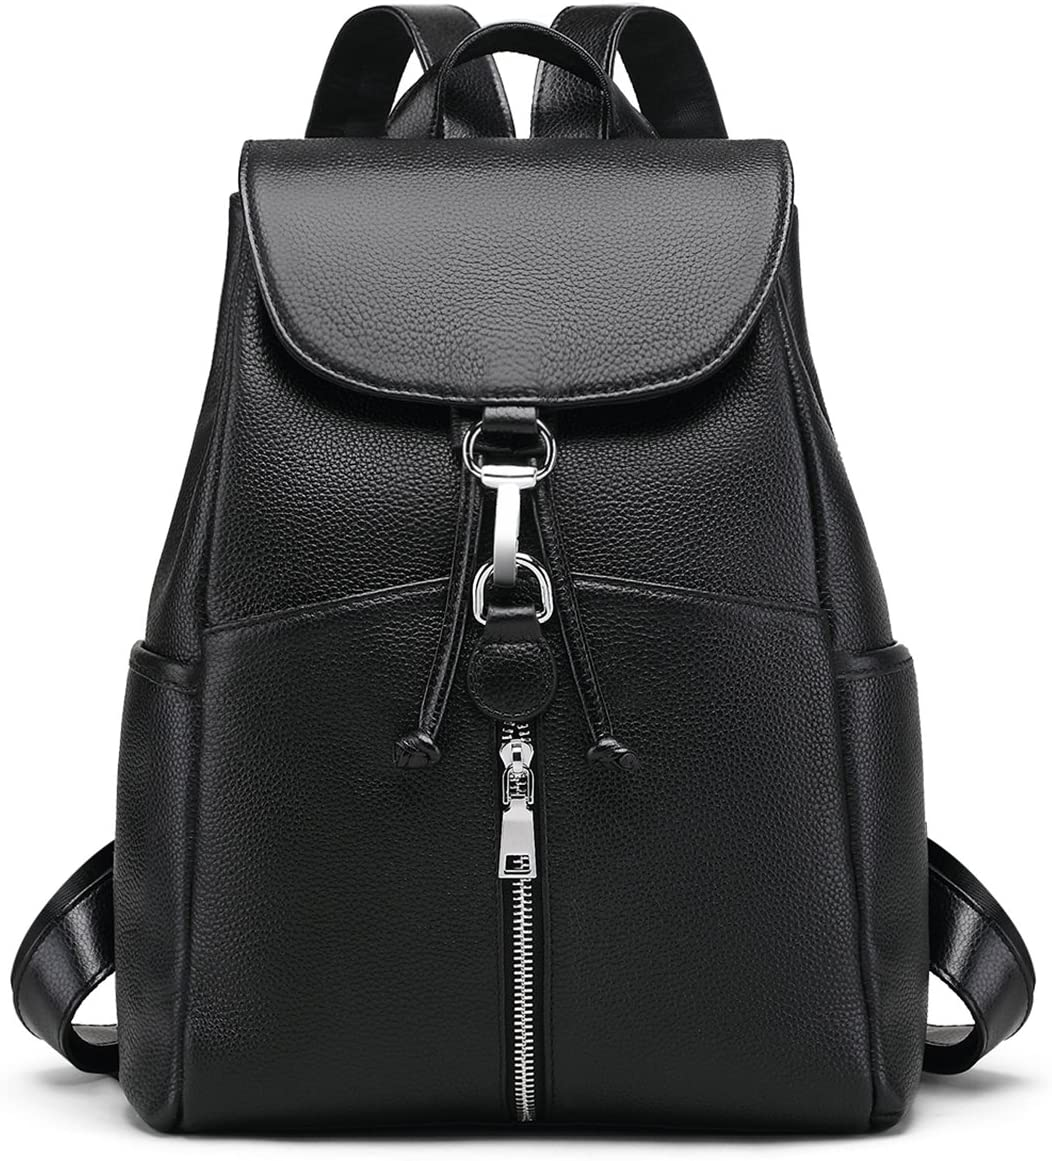 New Women Real Genuine Leather Backpack Purse vintage SchoolBag by Coolcy (Black)